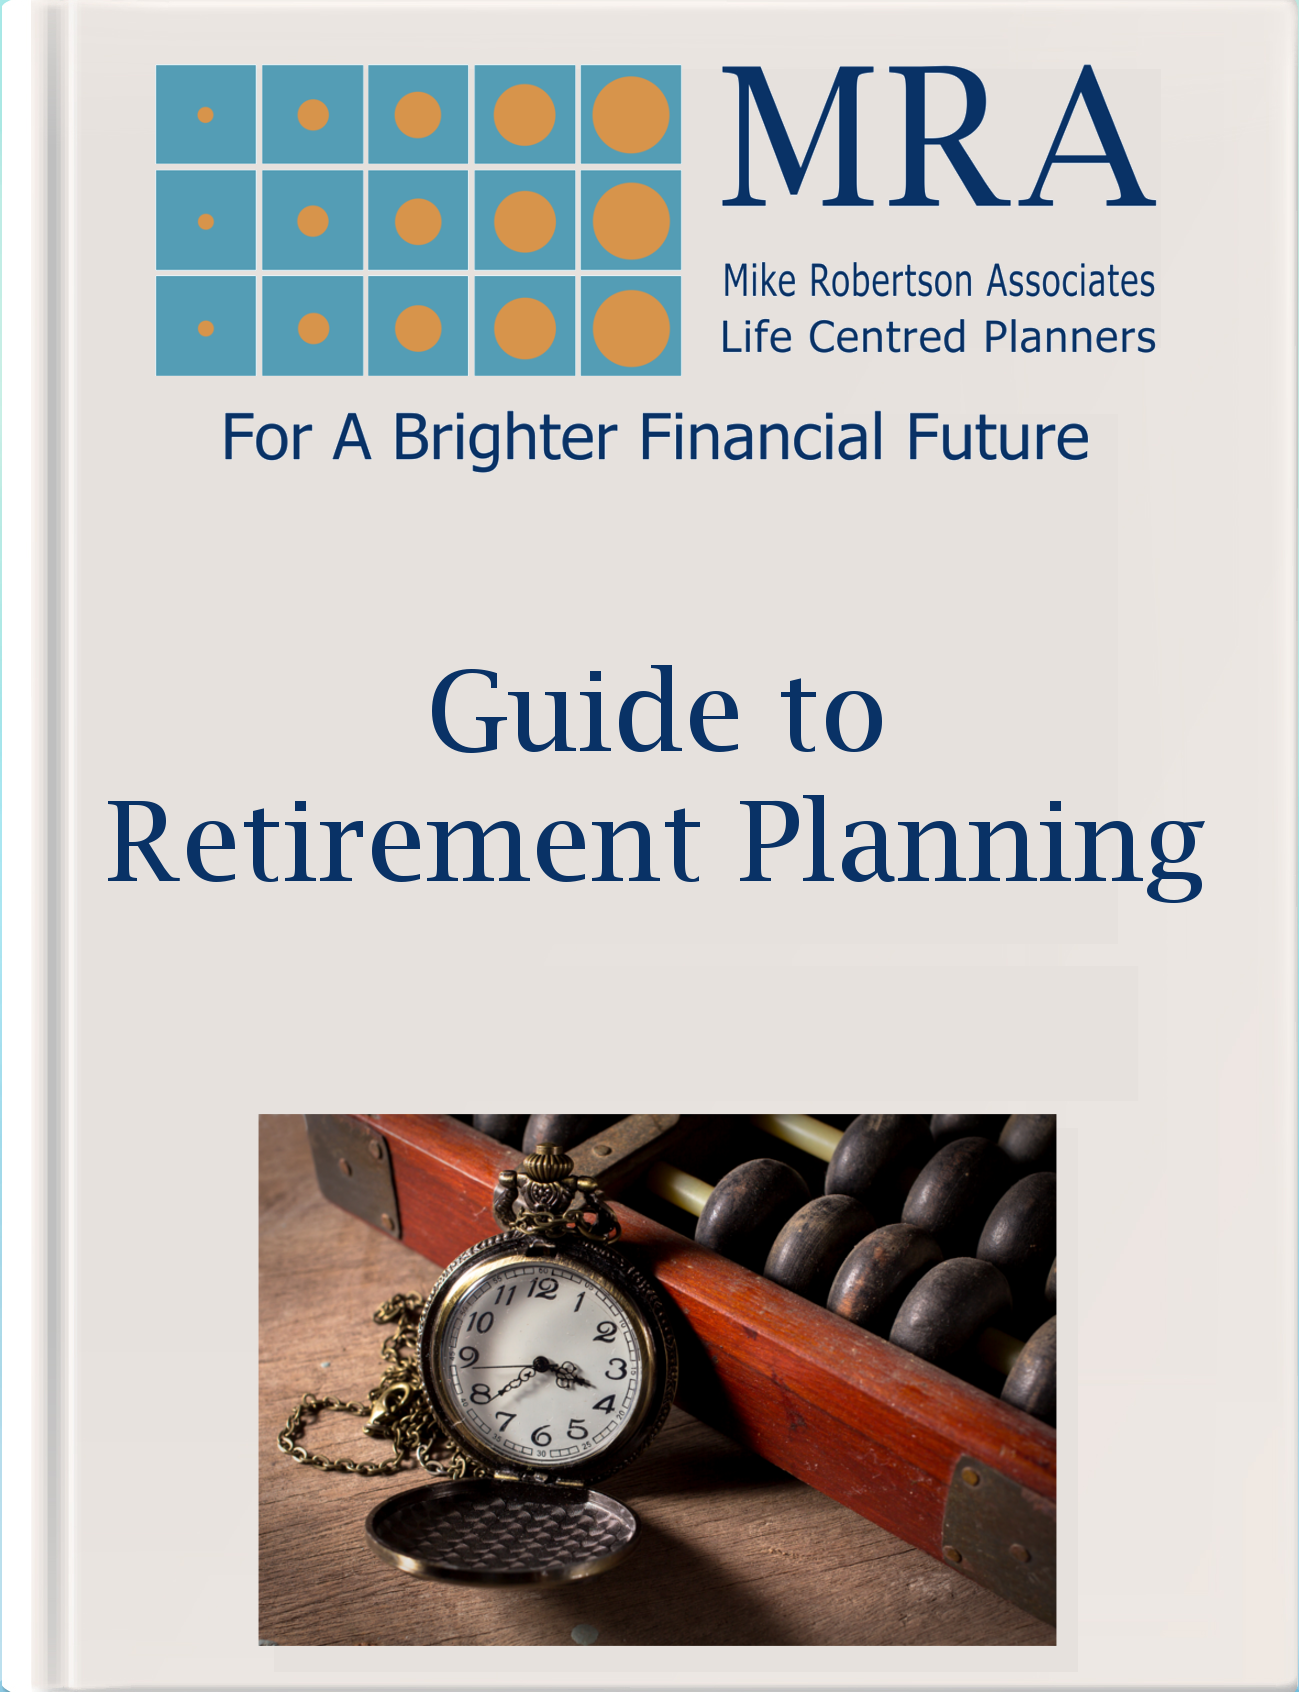 Download our Guide to Retirement Planning. Lifestyle Financial Planners, Lifestyle Financial Planning, Life Centred Financial Planning, Life Centred Financial Planners, Independent Financial Adviser, Independent Financial Advisor, IFA Local, Life Style Financial Consultant, Life Centred Financial Consultant, Personal Financial Planning, Financial Planning, Personal Financial Planning, Personal Finances, Financial Consultant, Pensions, Pensions Planner, Retirement Planning, Retirement Planner, Tax Planning, Tax Planning Consultant, Tax Planning Adviser, Tax Consultant, Tax Planning Advisor, Cash Flow Budgeting, Banking, Insurance, Term Assurance, Mortgage Consultant, Mortgage Adviser, Mortgage Advisor, Mortgages, Savings, Pesonal Savings, Investments, Estate Planning, Estate Planner, Later Life Planning, Wealth Management, Business Adviser, Business Consultant, Forecasting, Investments, Portfolio Planning, Financial Guidance, Financial Security, Family Protection, Critical Illness, Critical Illness Planning, Critical Illness Protection, Tax Efficient Savings, Tax Planning, Tax Efficient Investments, Saving For Long Term Goals, Savings For Long Term Care, Life Centred Financial Advice, Life Centred Adviser, Life Centred Advisor, Life Centered Planning, Life Centered Adviser, Cash Flow Forecasting, Residence Nil Rate Band, Land Registry, Tracing Land Registry Form, Financial Planning, Financial Planners, Work To Live Financial Planning, What is Inflation, How to beat Inflation, Selling a property in a limited company, SSAS Pensions, SSAS Pension, What is a SSAS, What is a SIPP, SIPP Planning, SSAS Planner, SIPP Planner, SSAS Planning, Stakeholder Pansions, Financial Freedom Reviews, When Can I Draw My State Pension, Saving Money, Ways To Save Money, Ways To Save money on a Tight Budget, Land Registry, What is An Annuity, Annuities, Lower My Bills, Nil Rate Band, Inheritance Tax Advice, Essential Corporate Solutions, Inheritance Tax Residence Nil Rate Band, Debt Relief Order, Life Planning, Financial Advice East Sussex, Mike Robertson, Split The Bills, The Residence Nil Rate Band, The Best Saving Schemes, What is a Venture Capital Trust, What Is A VCT, What Is A EIS, What Is An Enterprise Investment Scheme, Is A Financial Planner Important, What Can a Financial Planner do for me, Do I need Financial Planning, Do I need Financial Planning, Do I need a Financial Planner, Do You Need a Financial Adviser, Eight Steps to choosing a Financial Adviser, Getting Financial Advice, Need Financial Planning, Why Do You need a Financial Adviser, What is A Financial Adviser, Pensions Advice